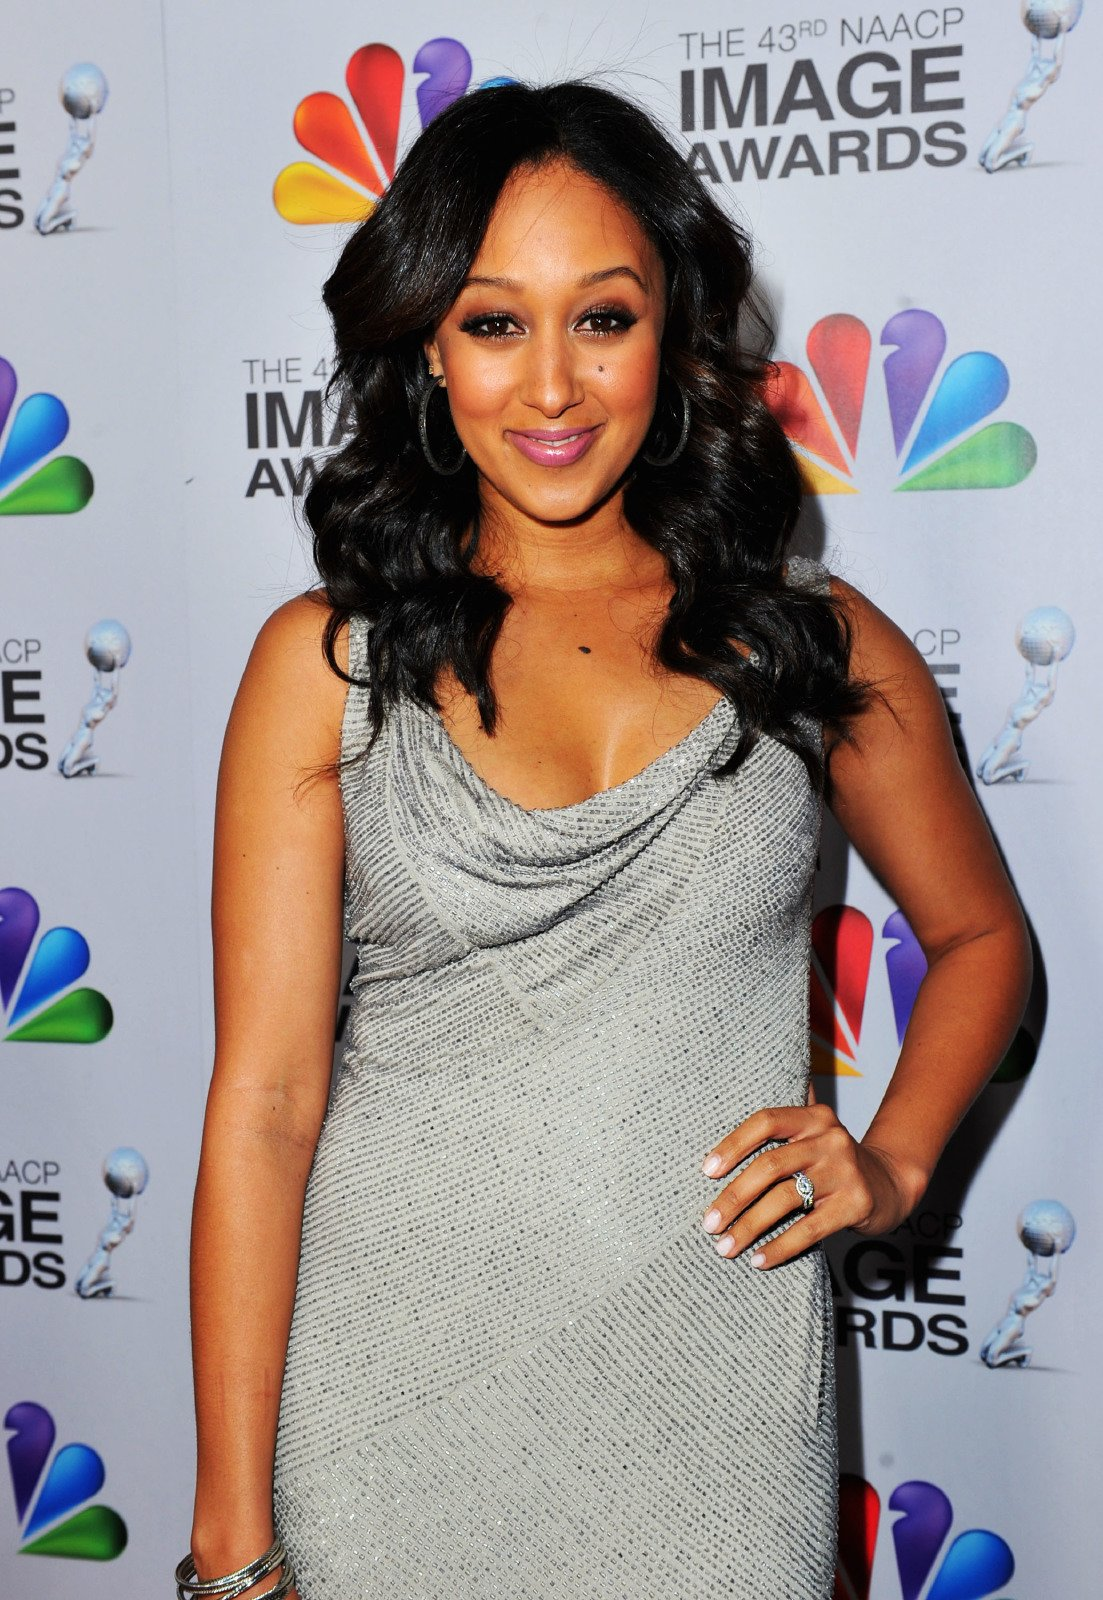 Actress Tamera Mowry-Housley arrives at the 43rd NAACP Image Awards held at The Shrine Auditorium on February 17, 2012 | Photo: Getty Images